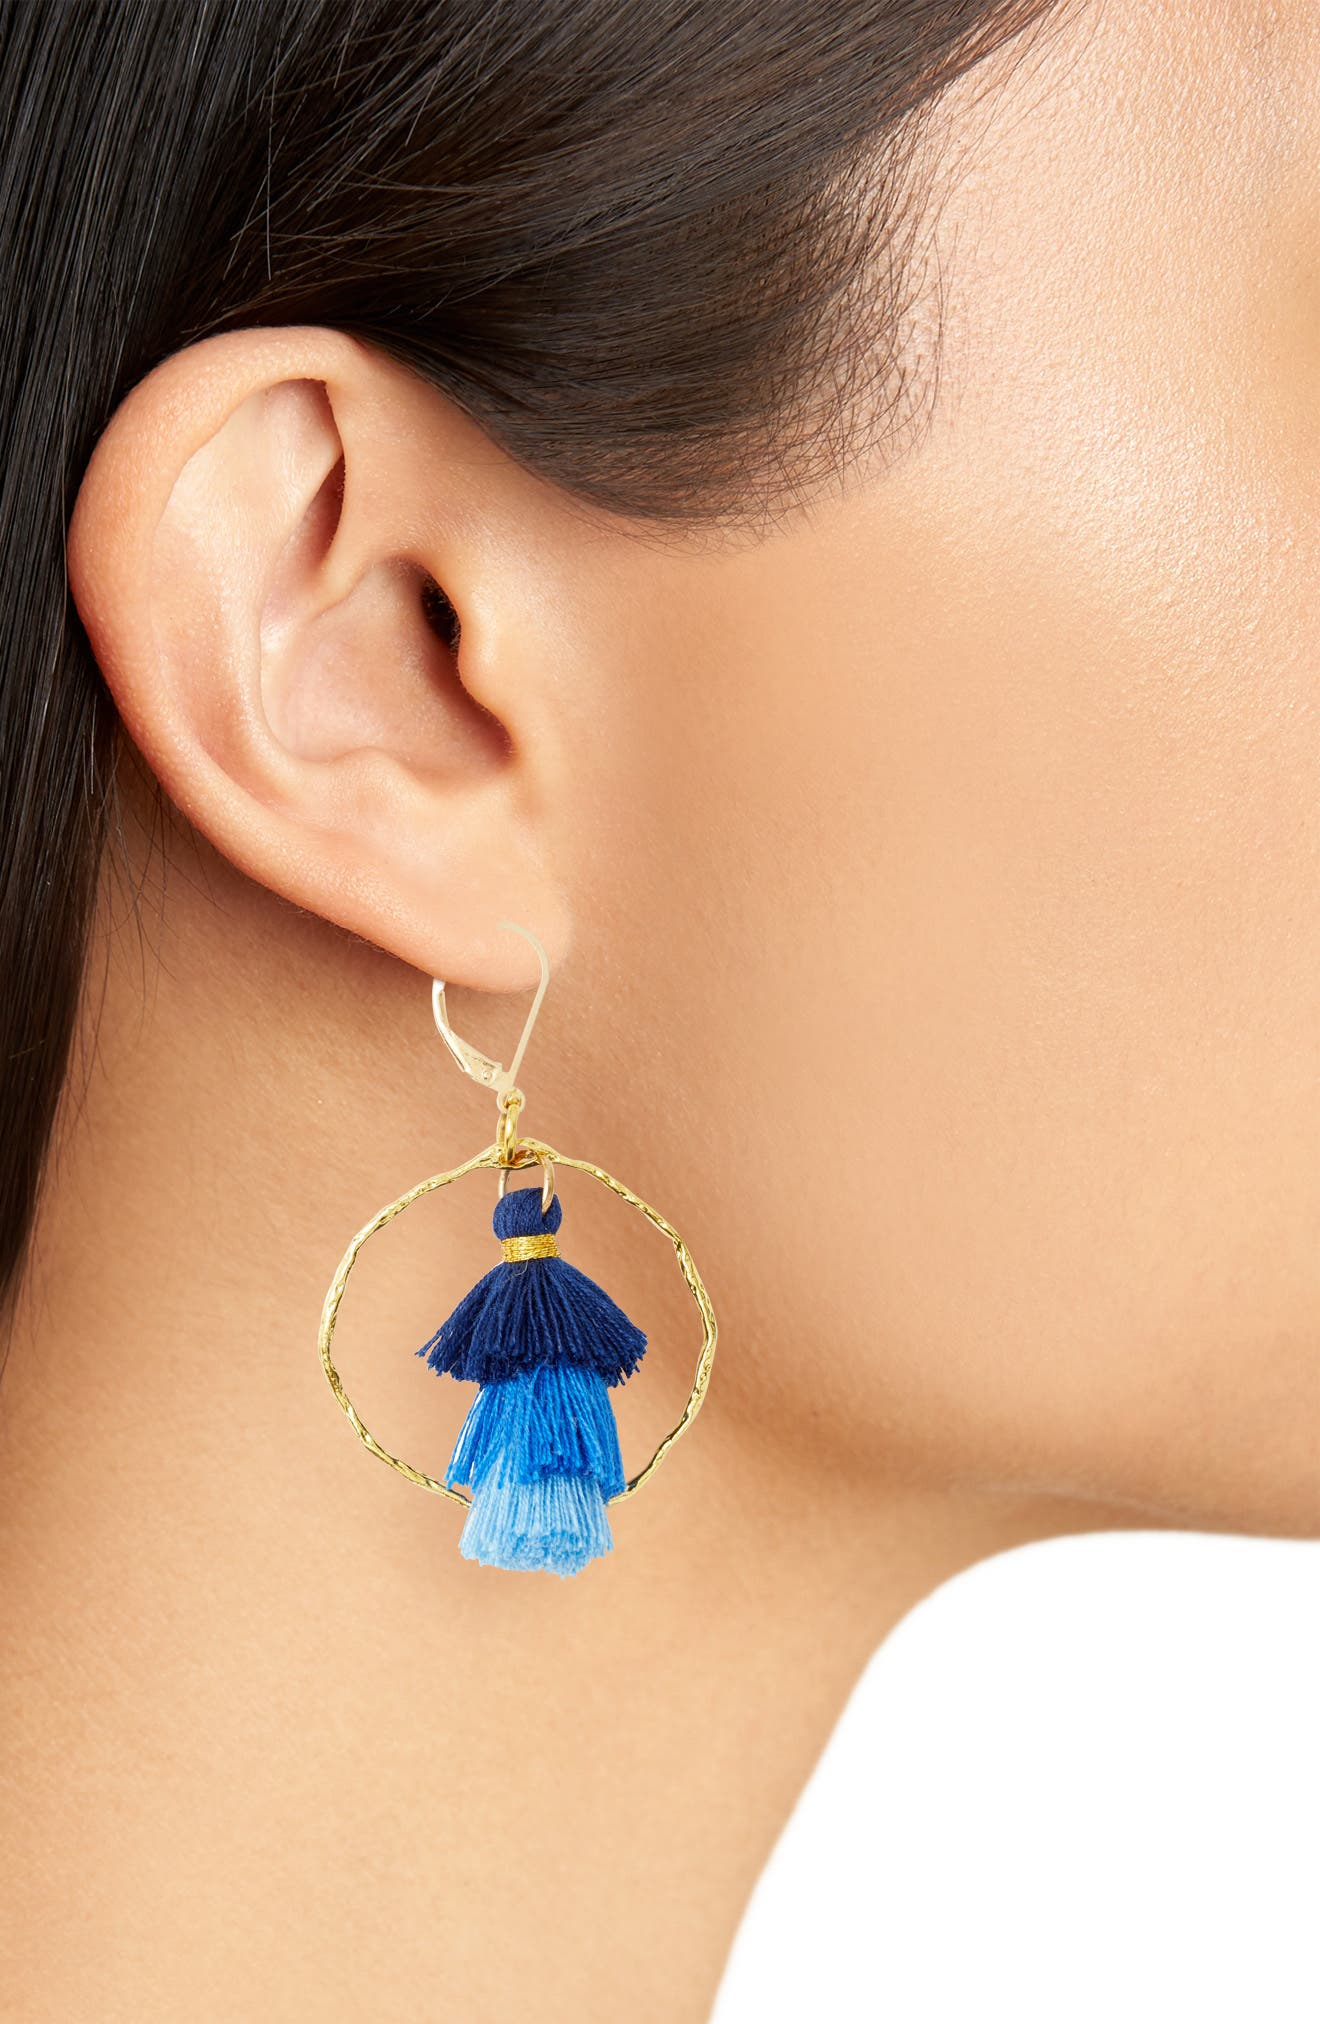 Ibiza Tassel & Hammered Hoop Earrings,                             Alternate thumbnail 2, color,                             Blue/ Gold